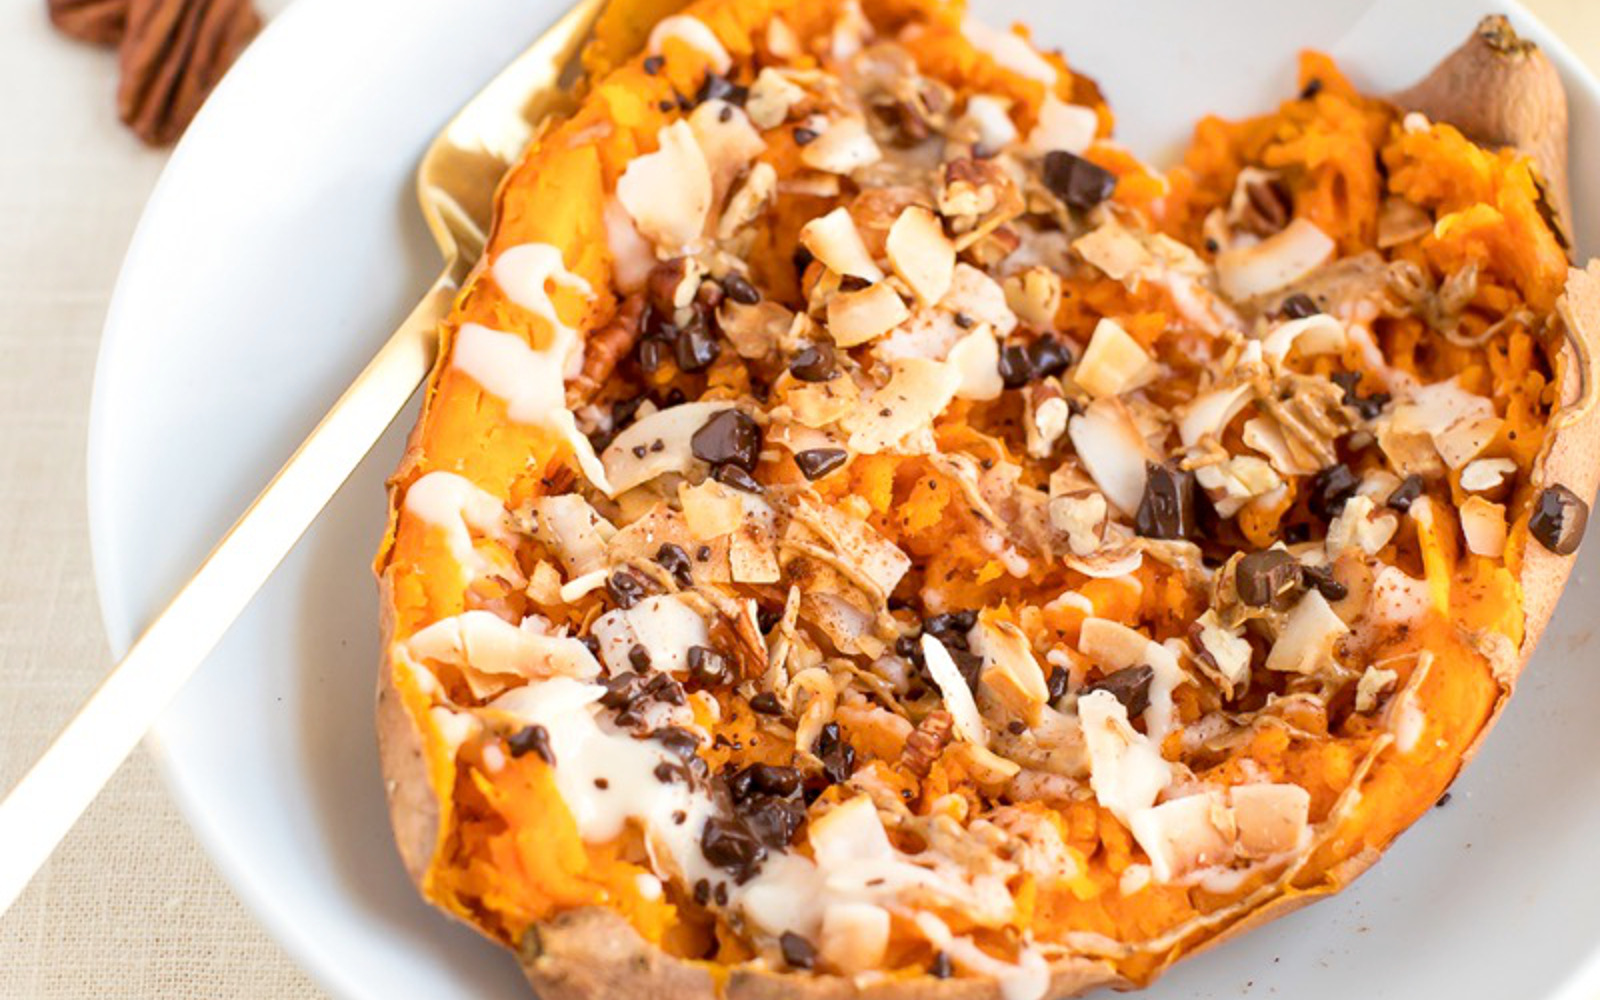 Vegan Healthy Dessert Baked Sweet Potato topped with almond flakes, coconut, dark chocolate, cinnamon, and pecans